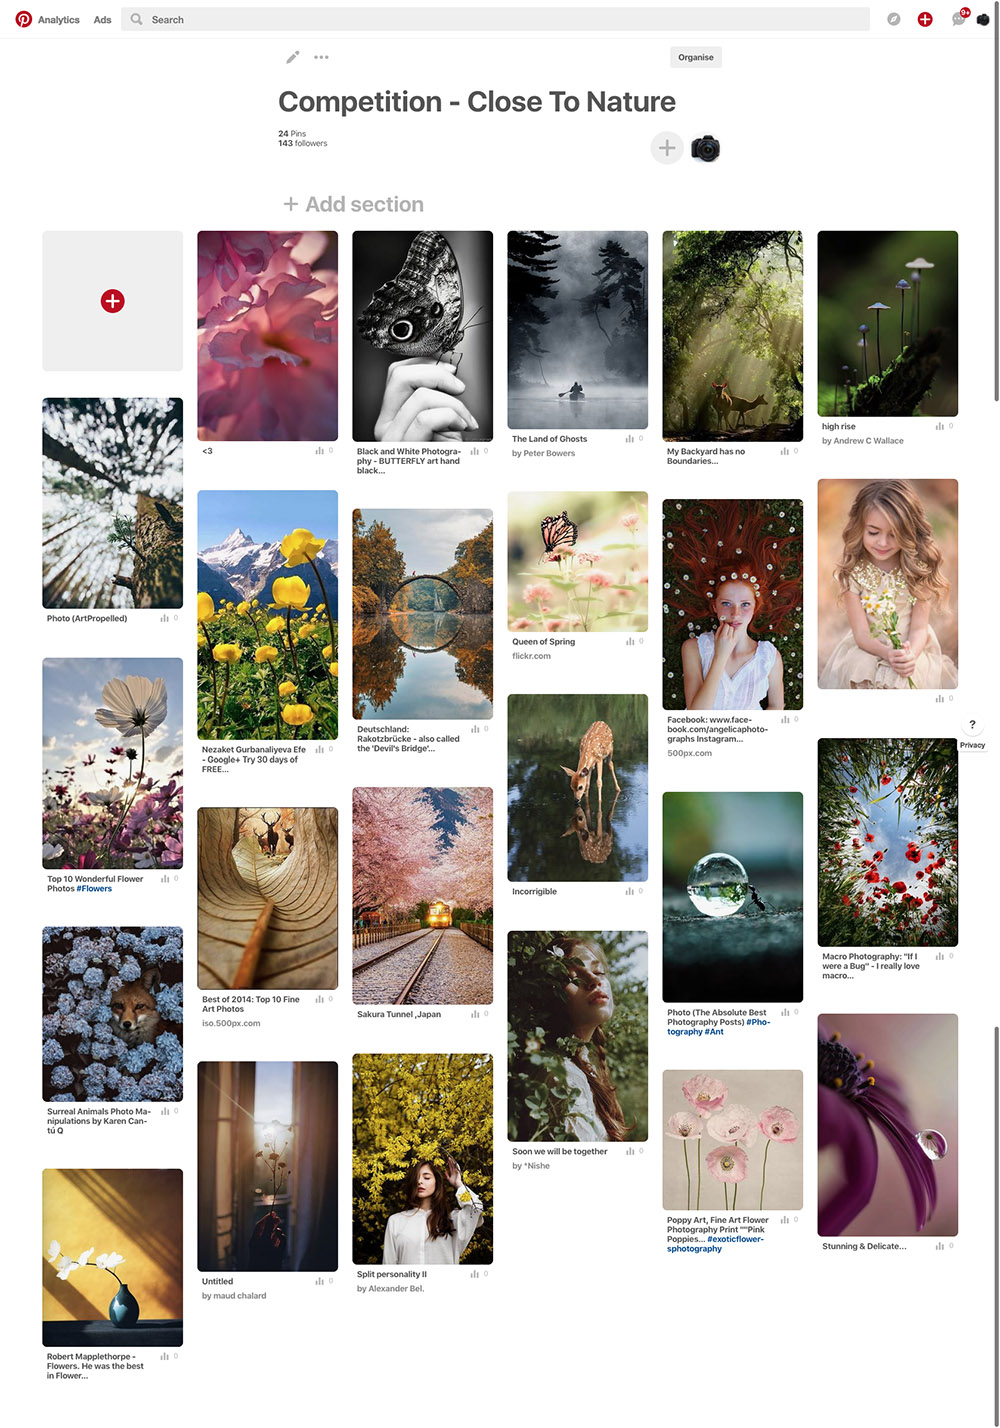 Pinterest - Close to Nature competition